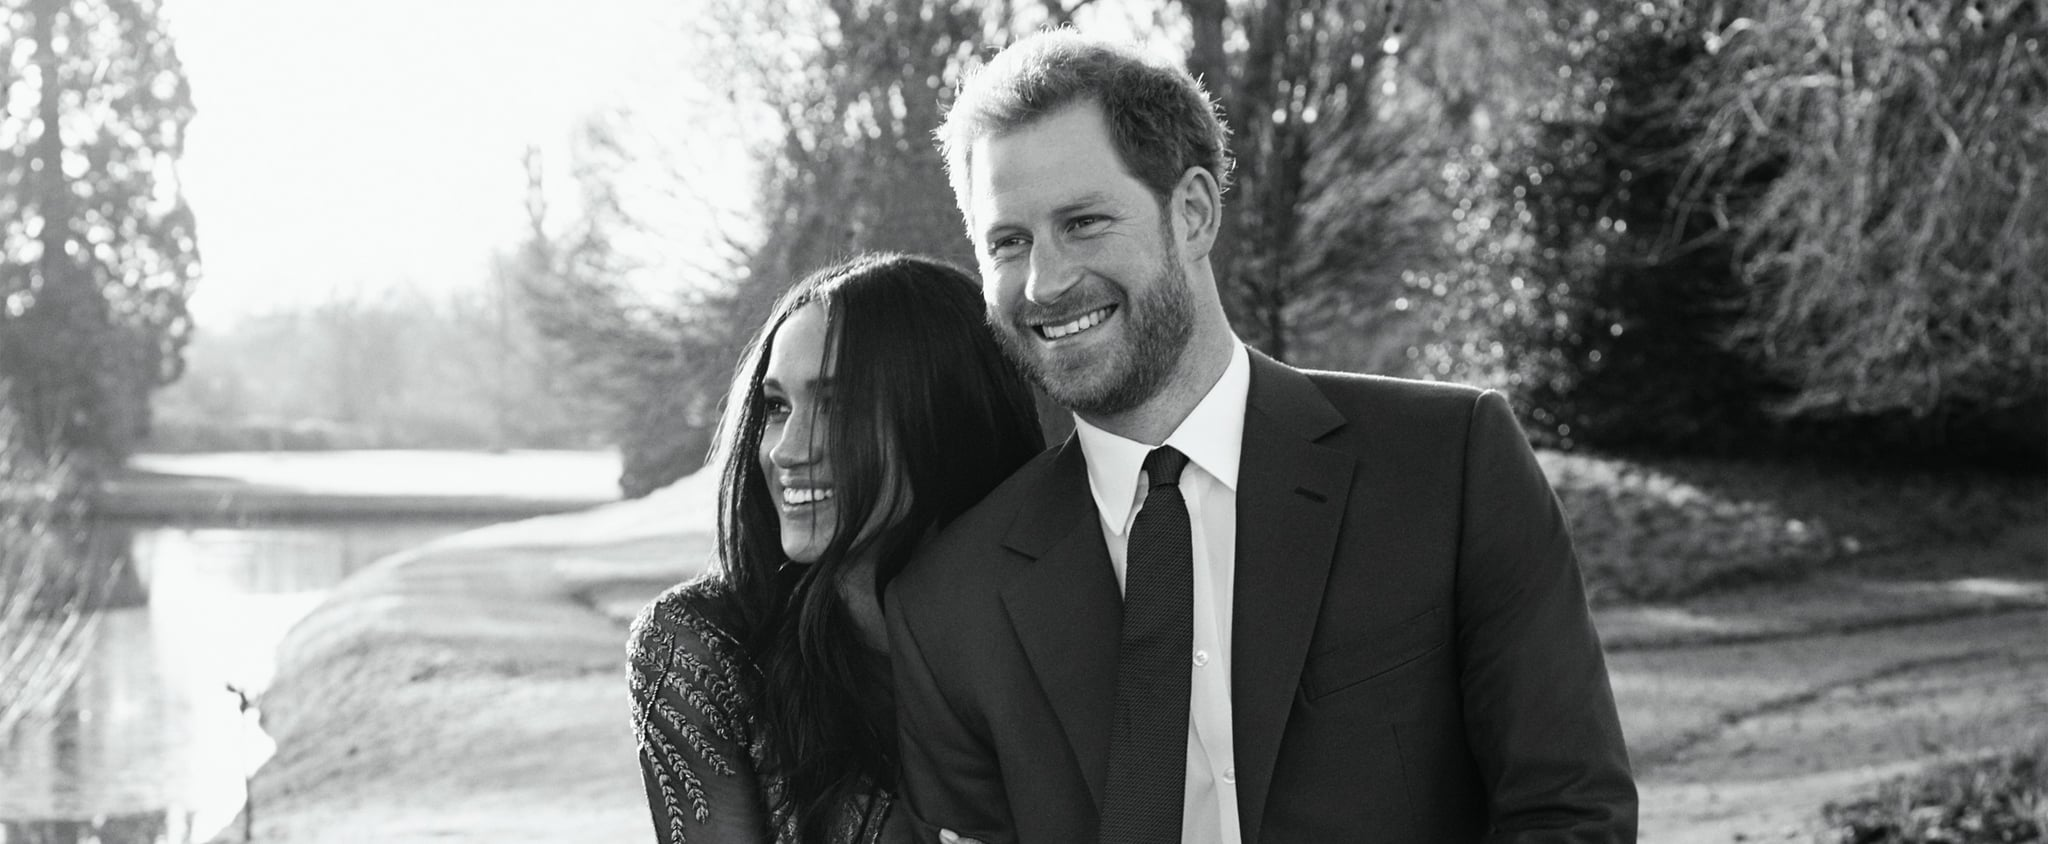 Royal Wedding Meghan Markle and Prince Harry